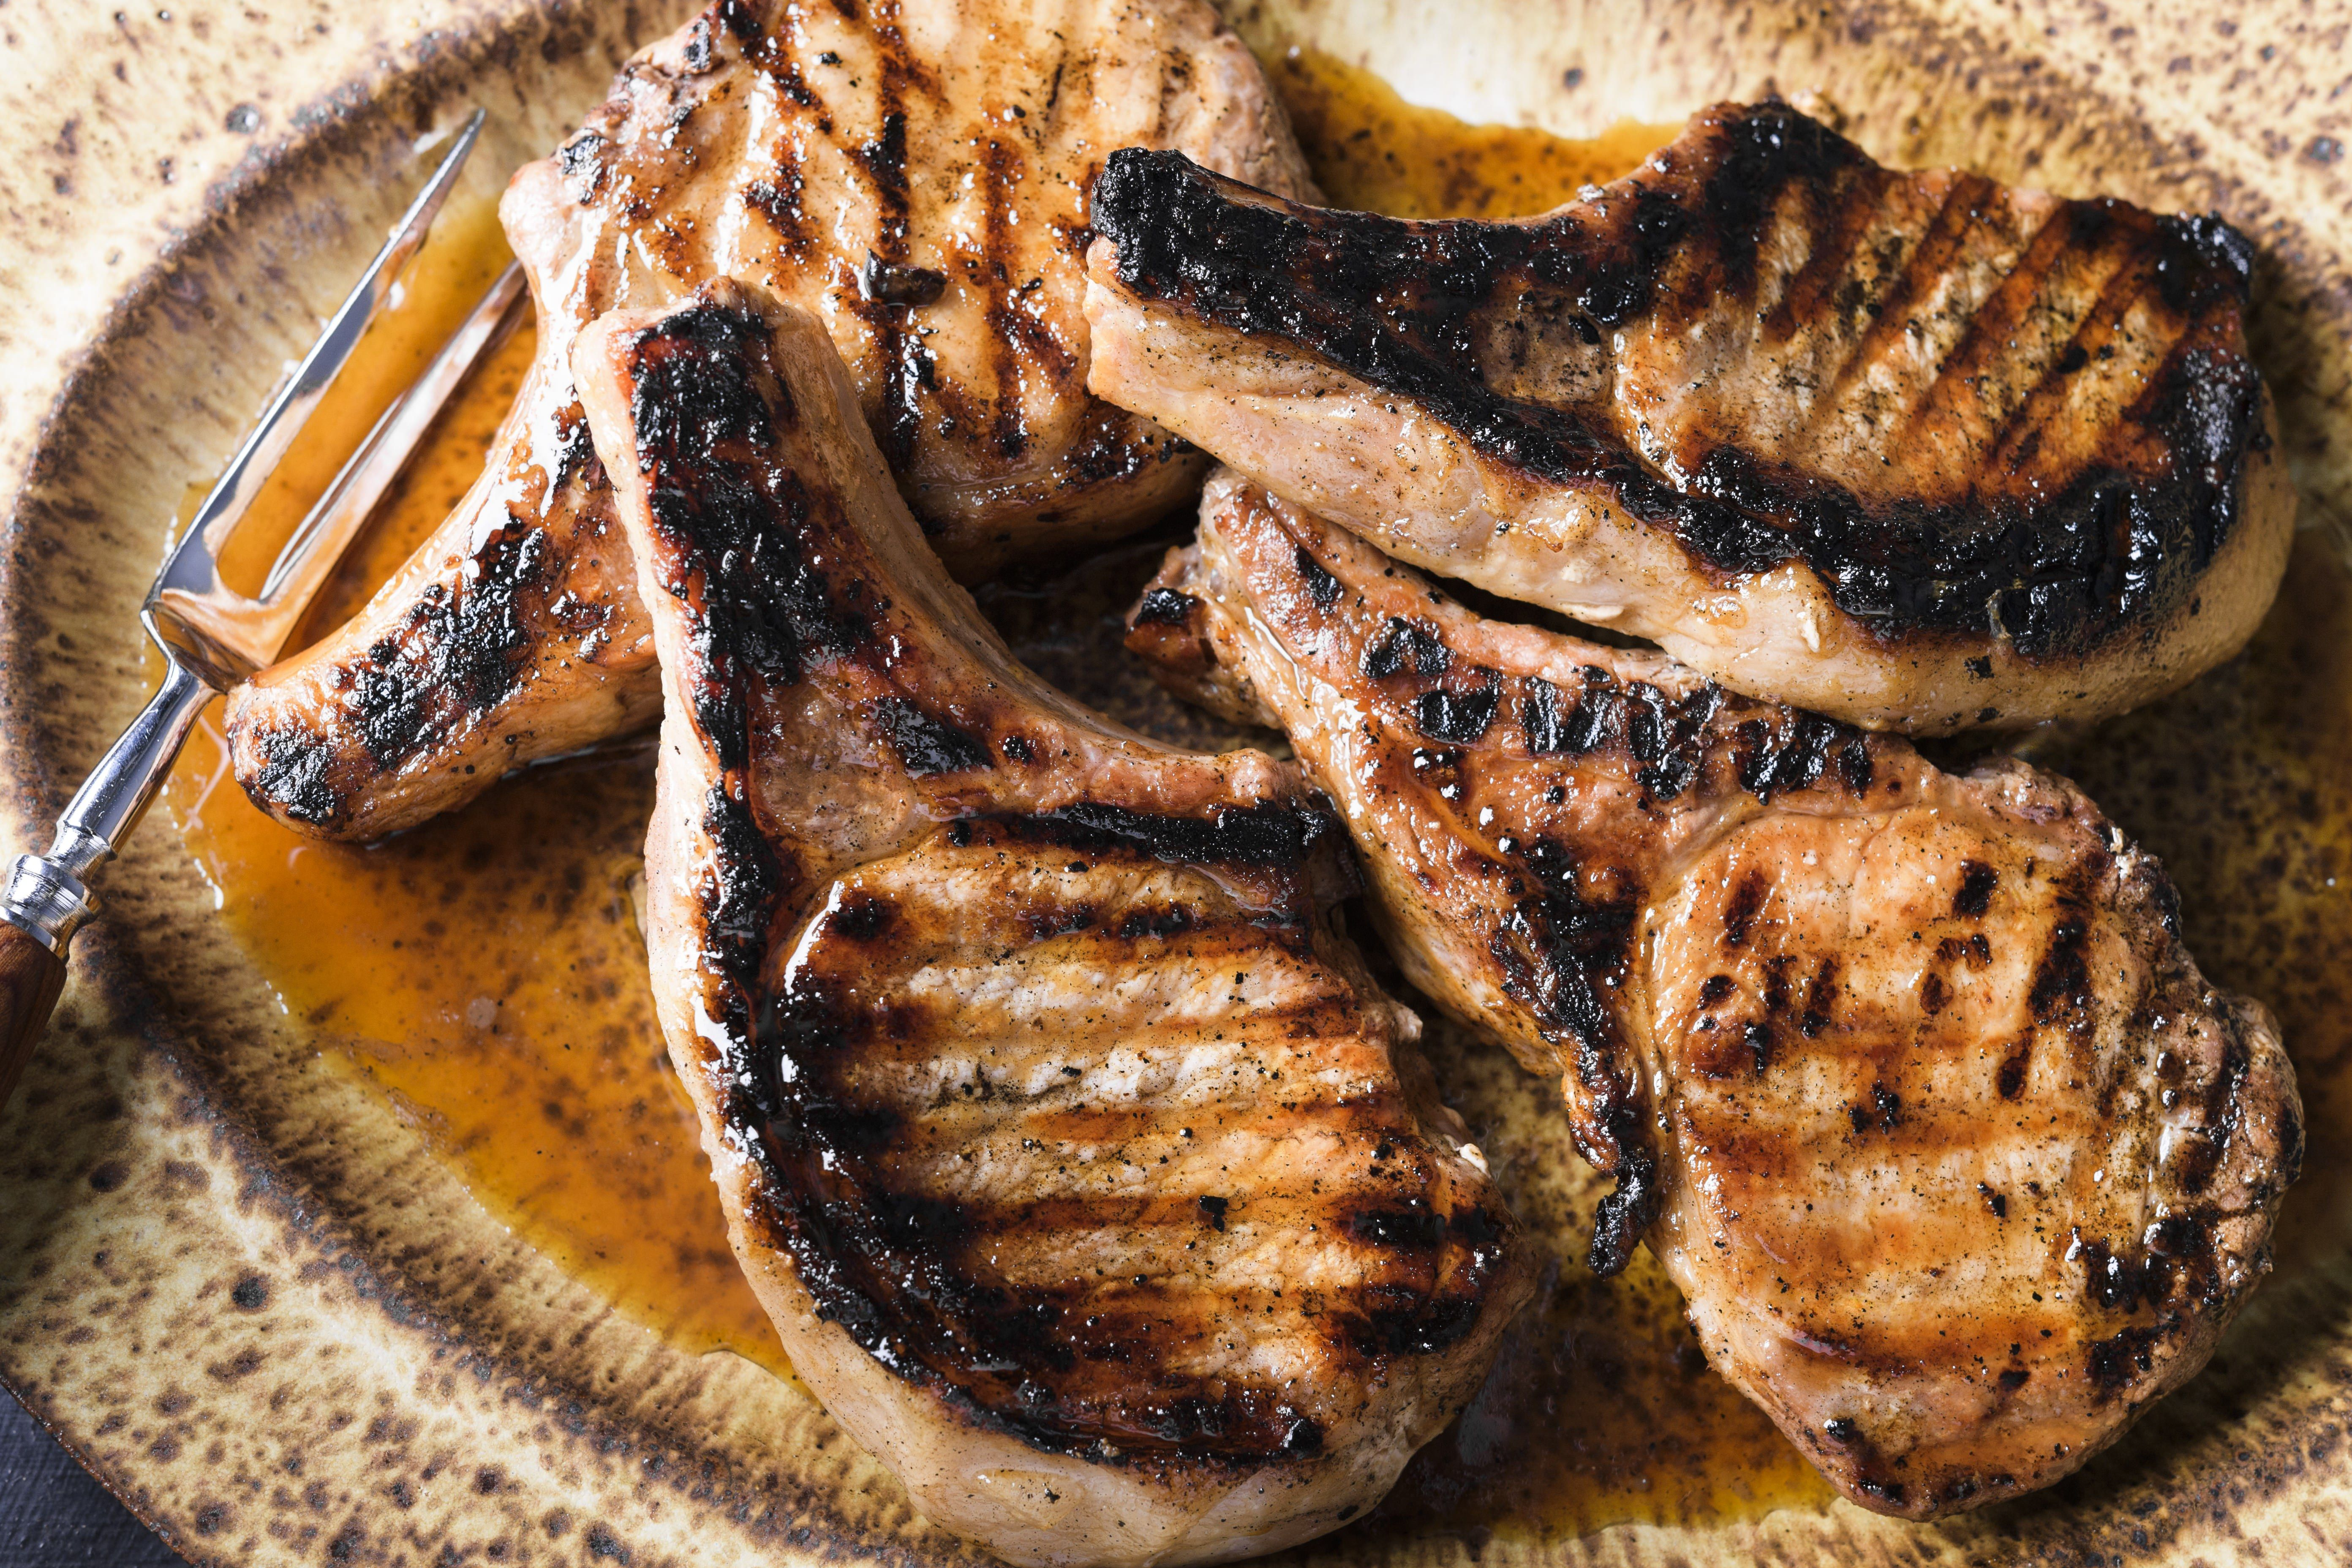 Grill-Smoked Pork Chops with Brown Sugar and Cider Vinegar Gastrique